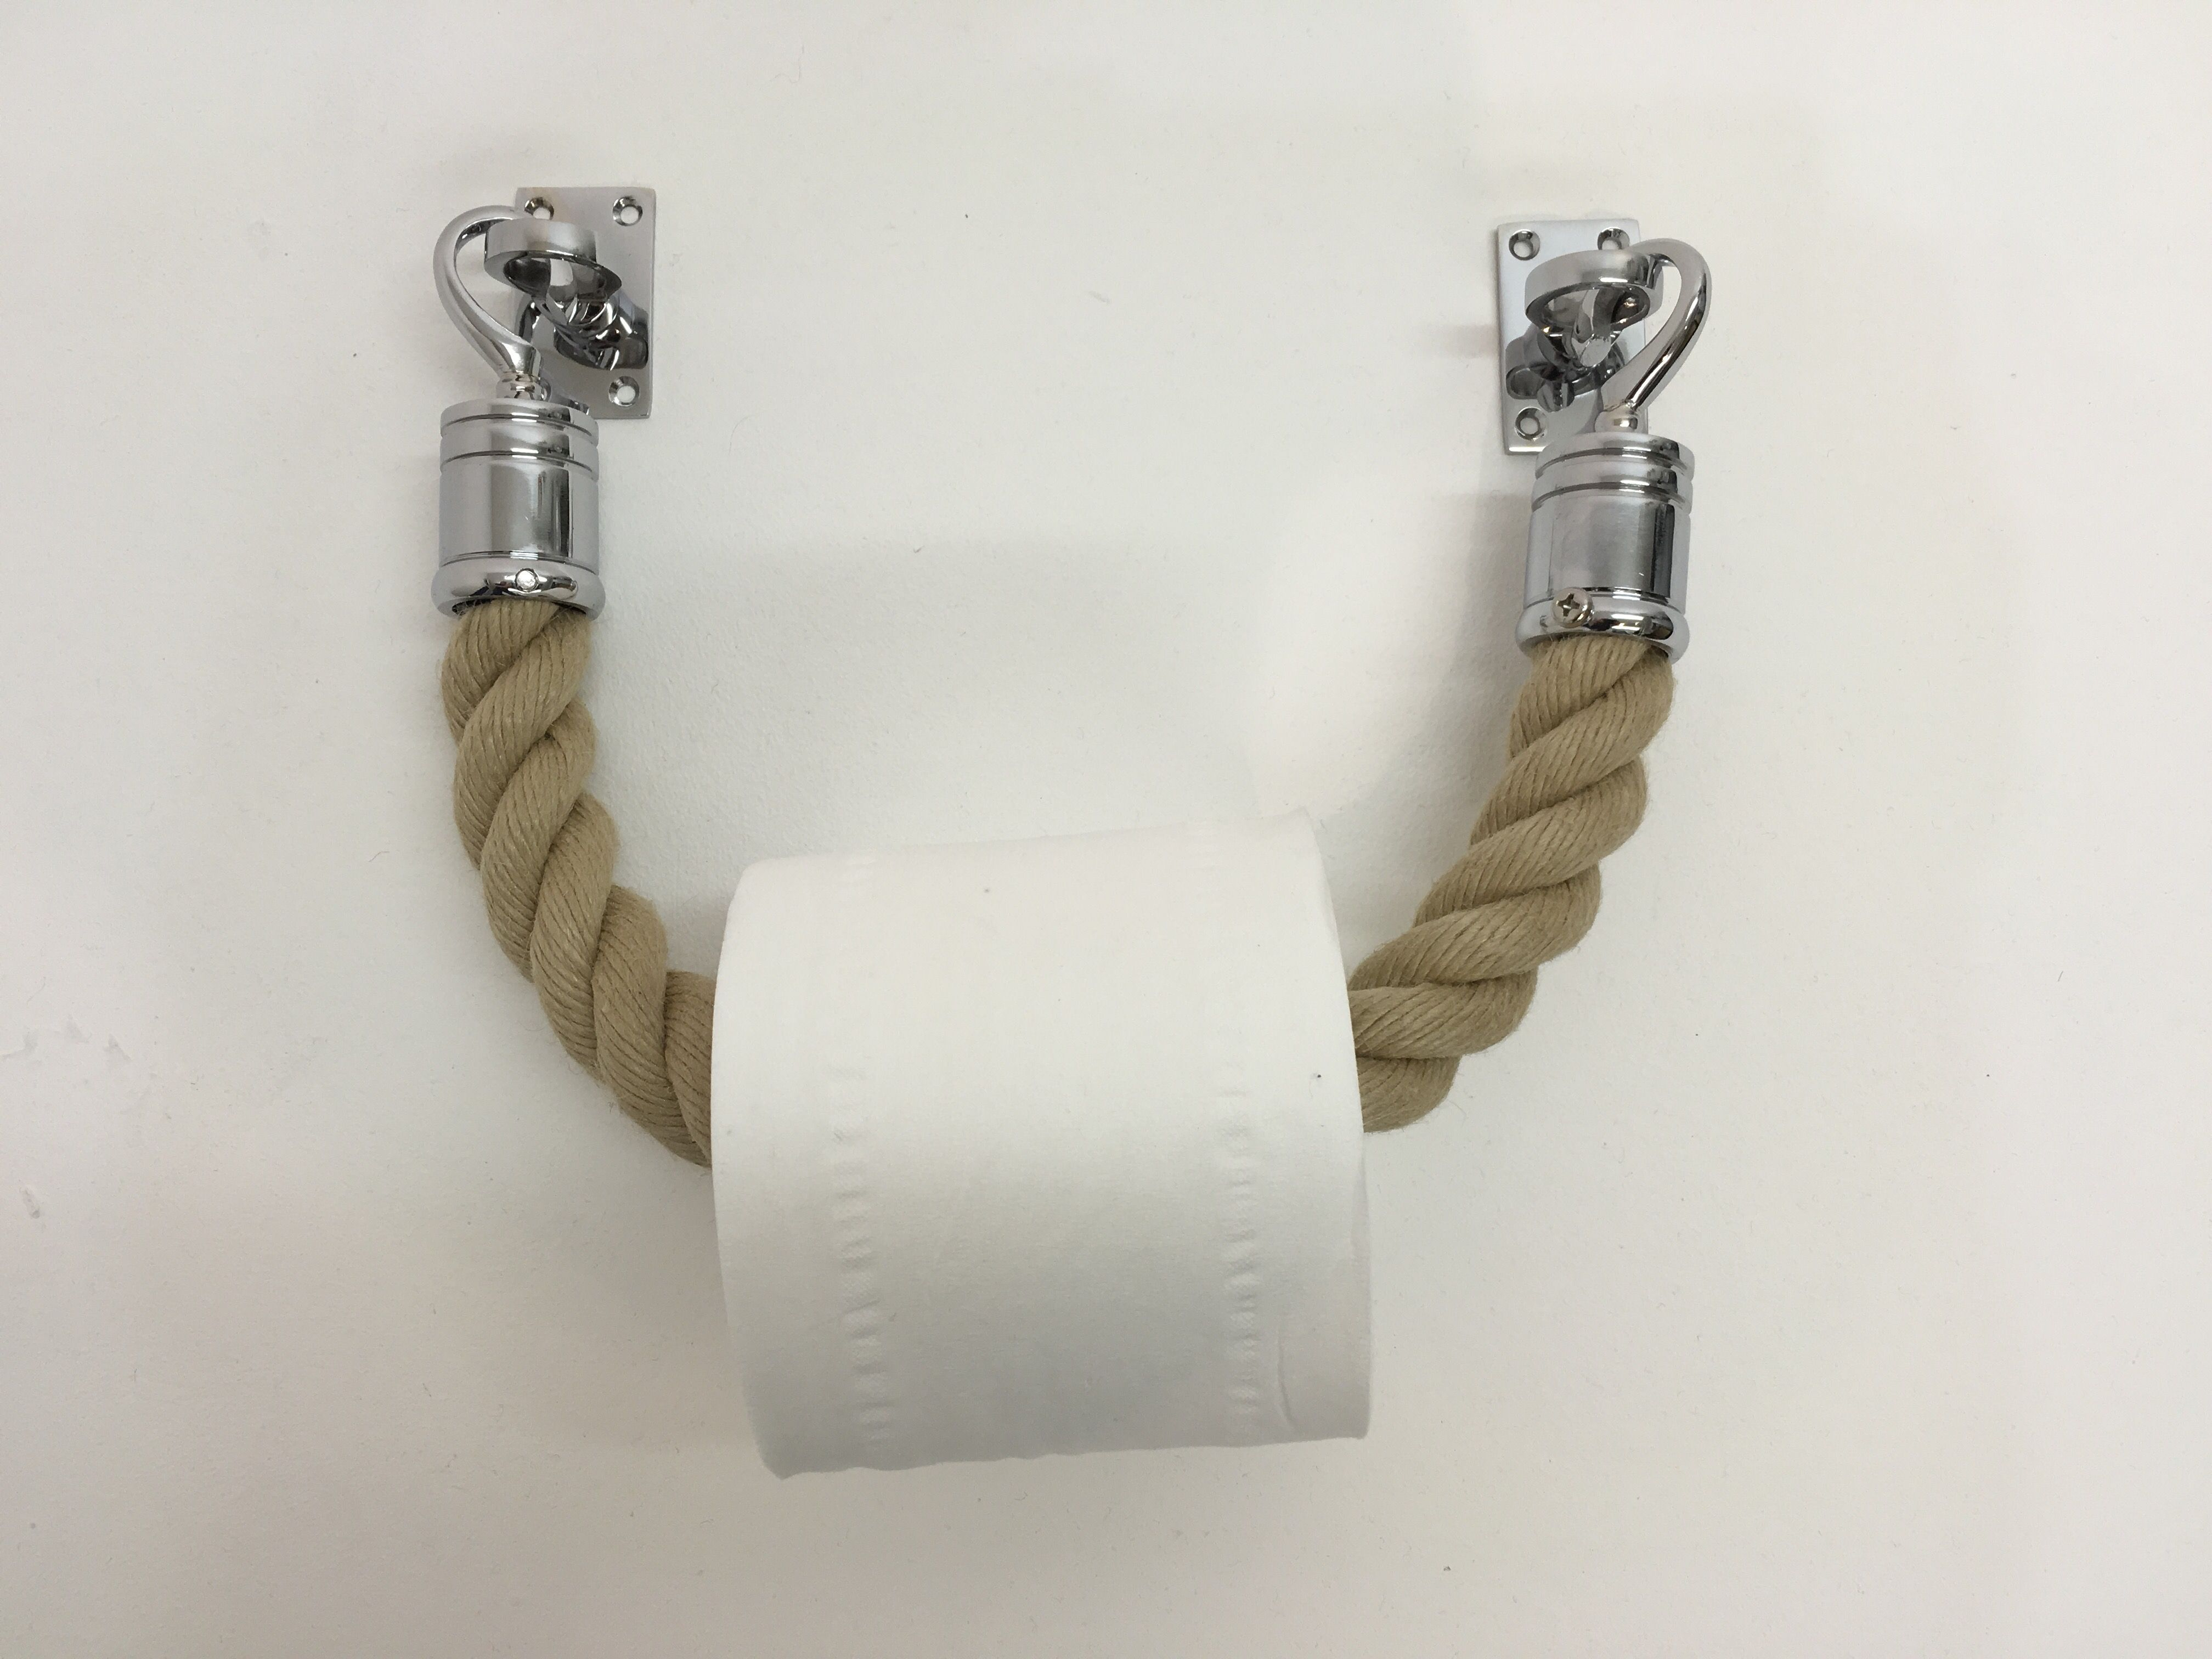 our bespoke designer toilet roll holder from our natural rope or oatmeal ropes with chrome